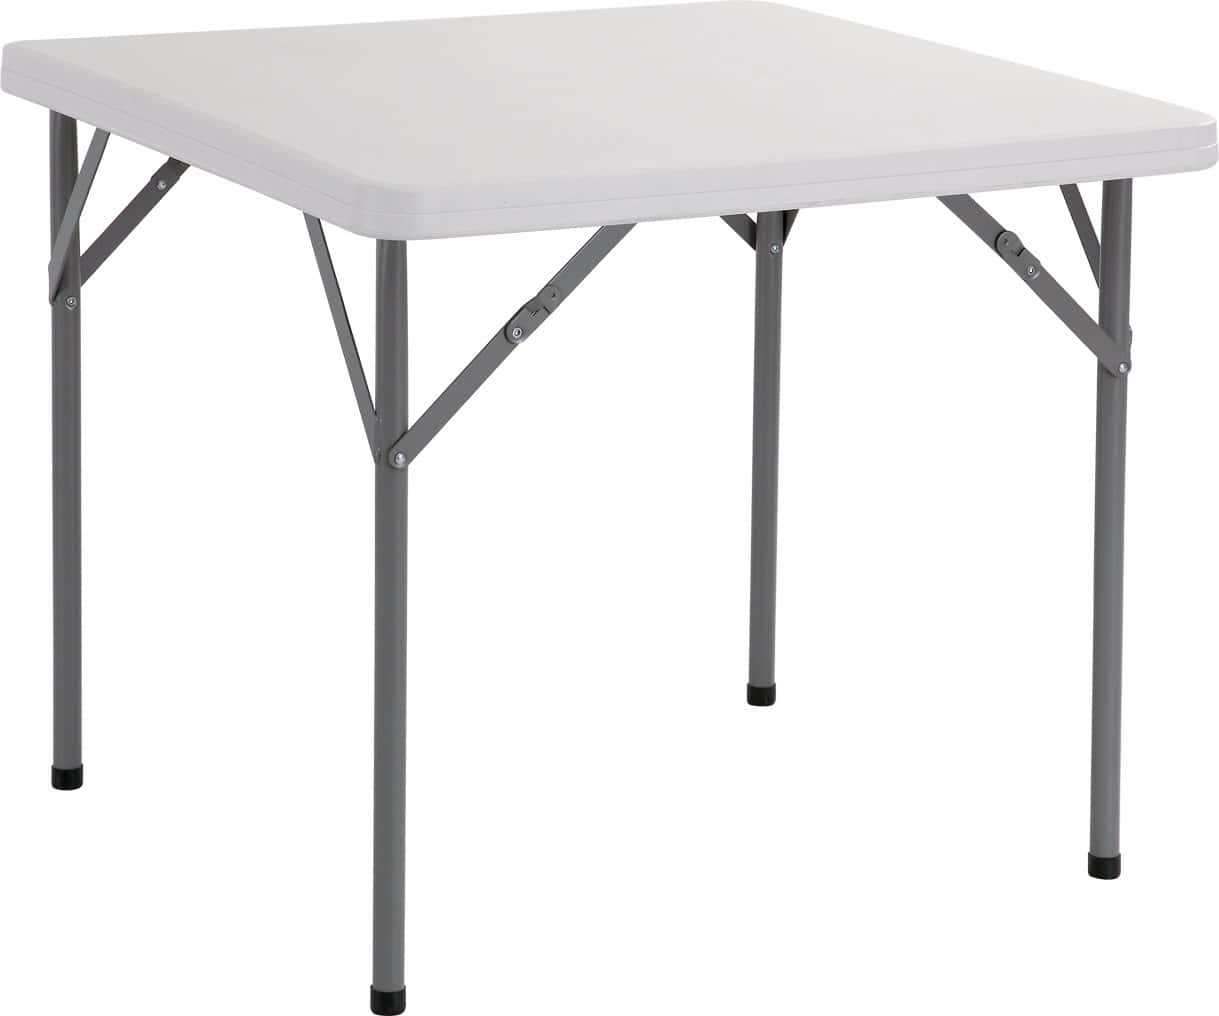 White Square Folding Table